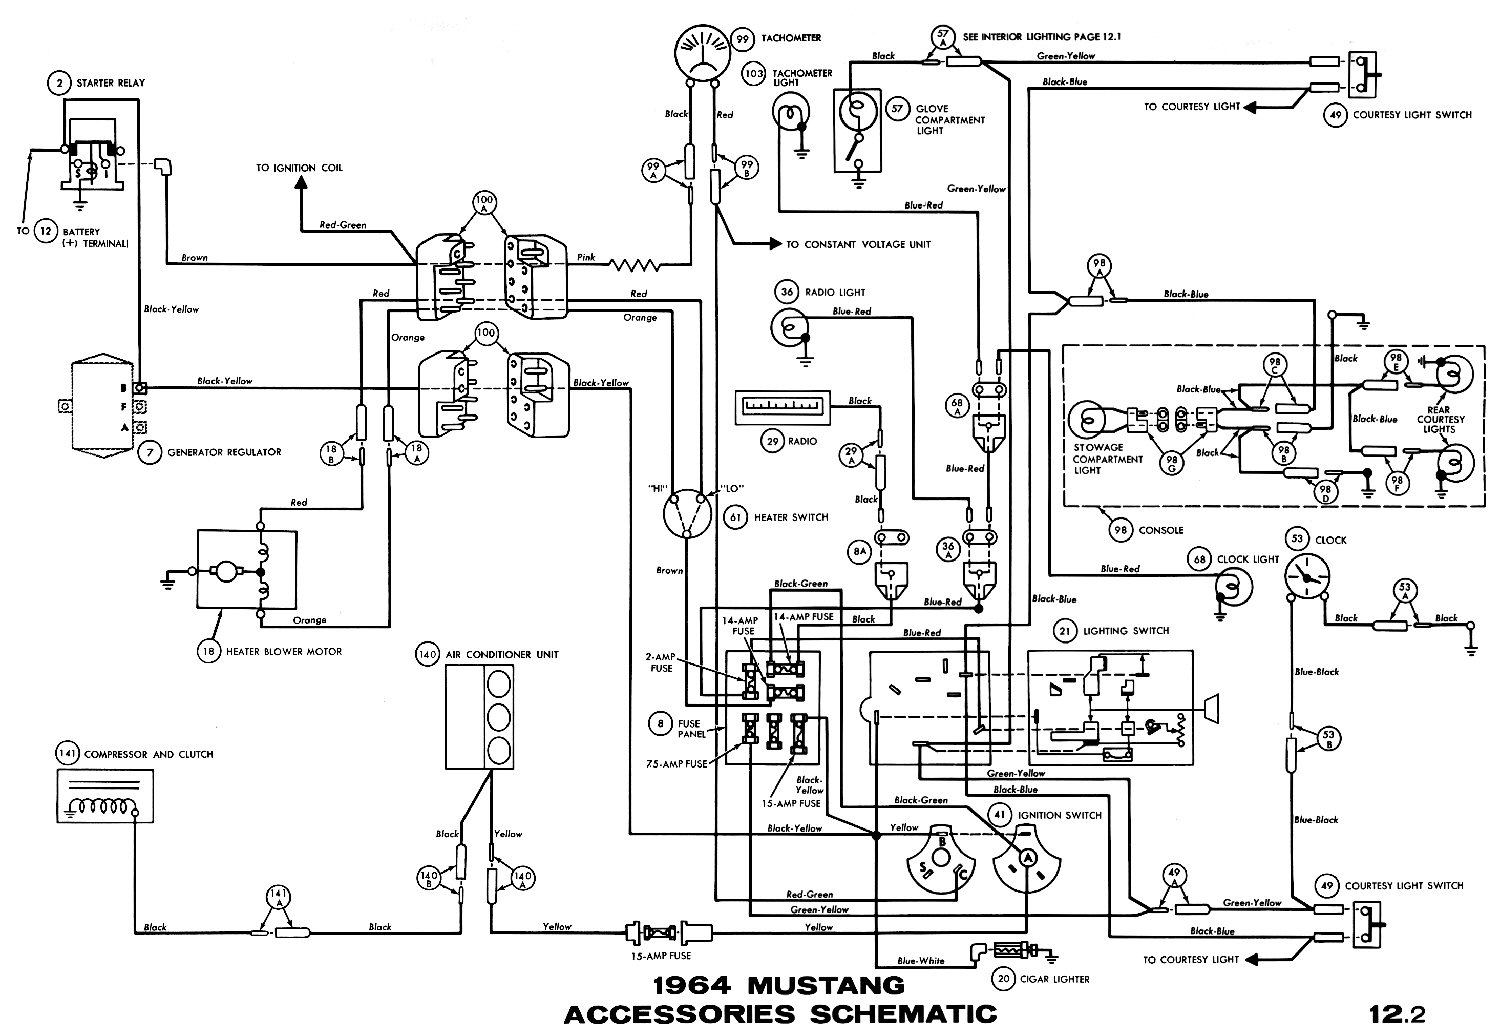 1964m 1964 mustang wiring diagrams average joe restoration Turn Signal Relay Wiring Diagram at mifinder.co